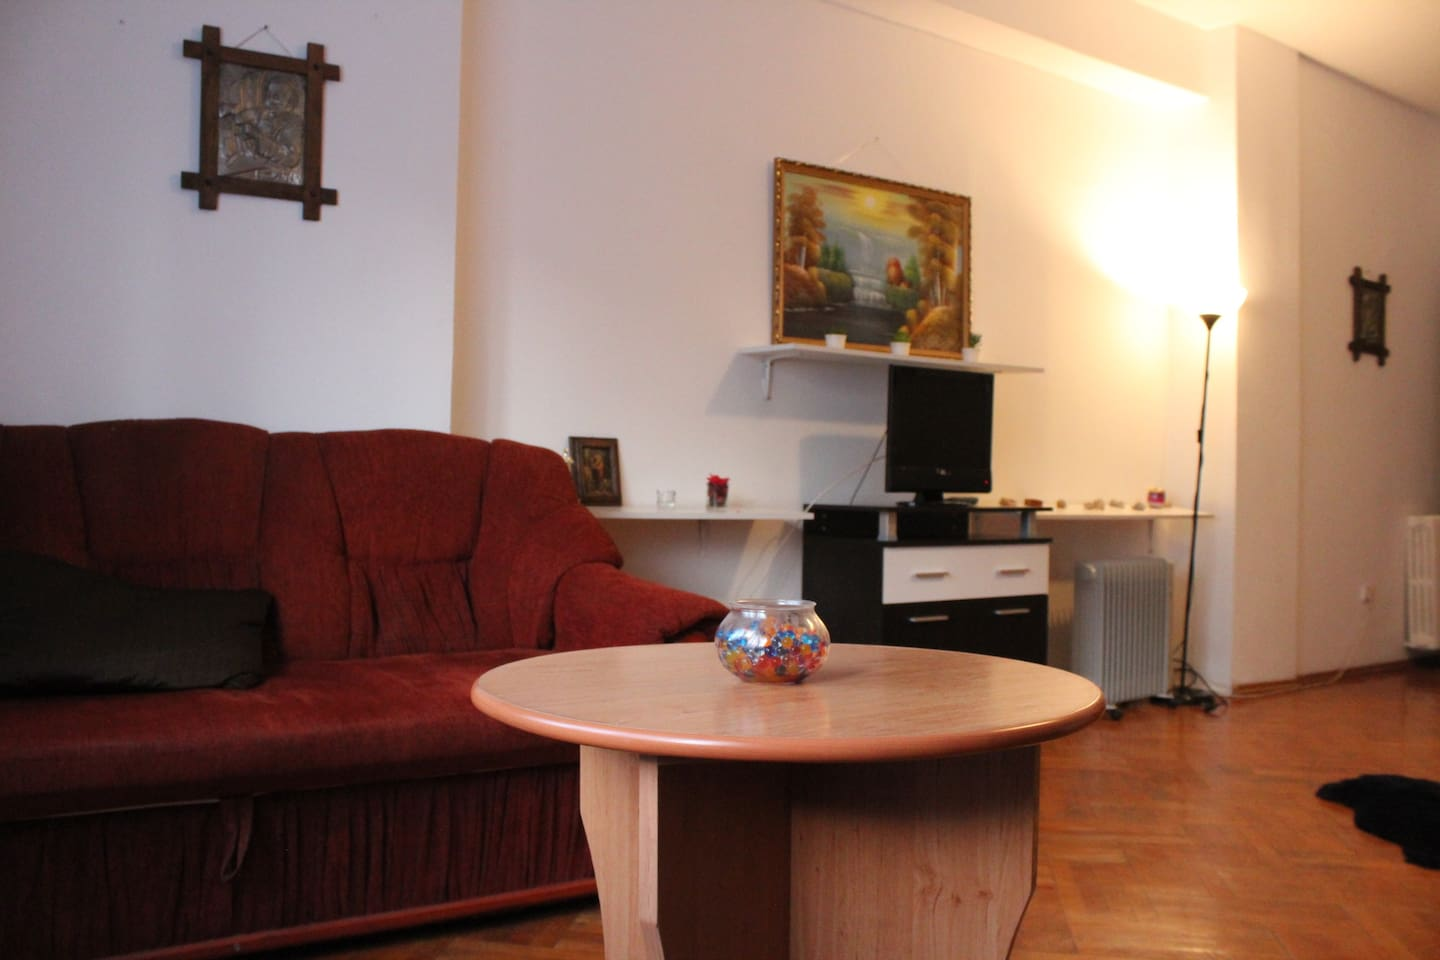 The Luxury Room - Sofa and Table, area to relax whilst staying with us!